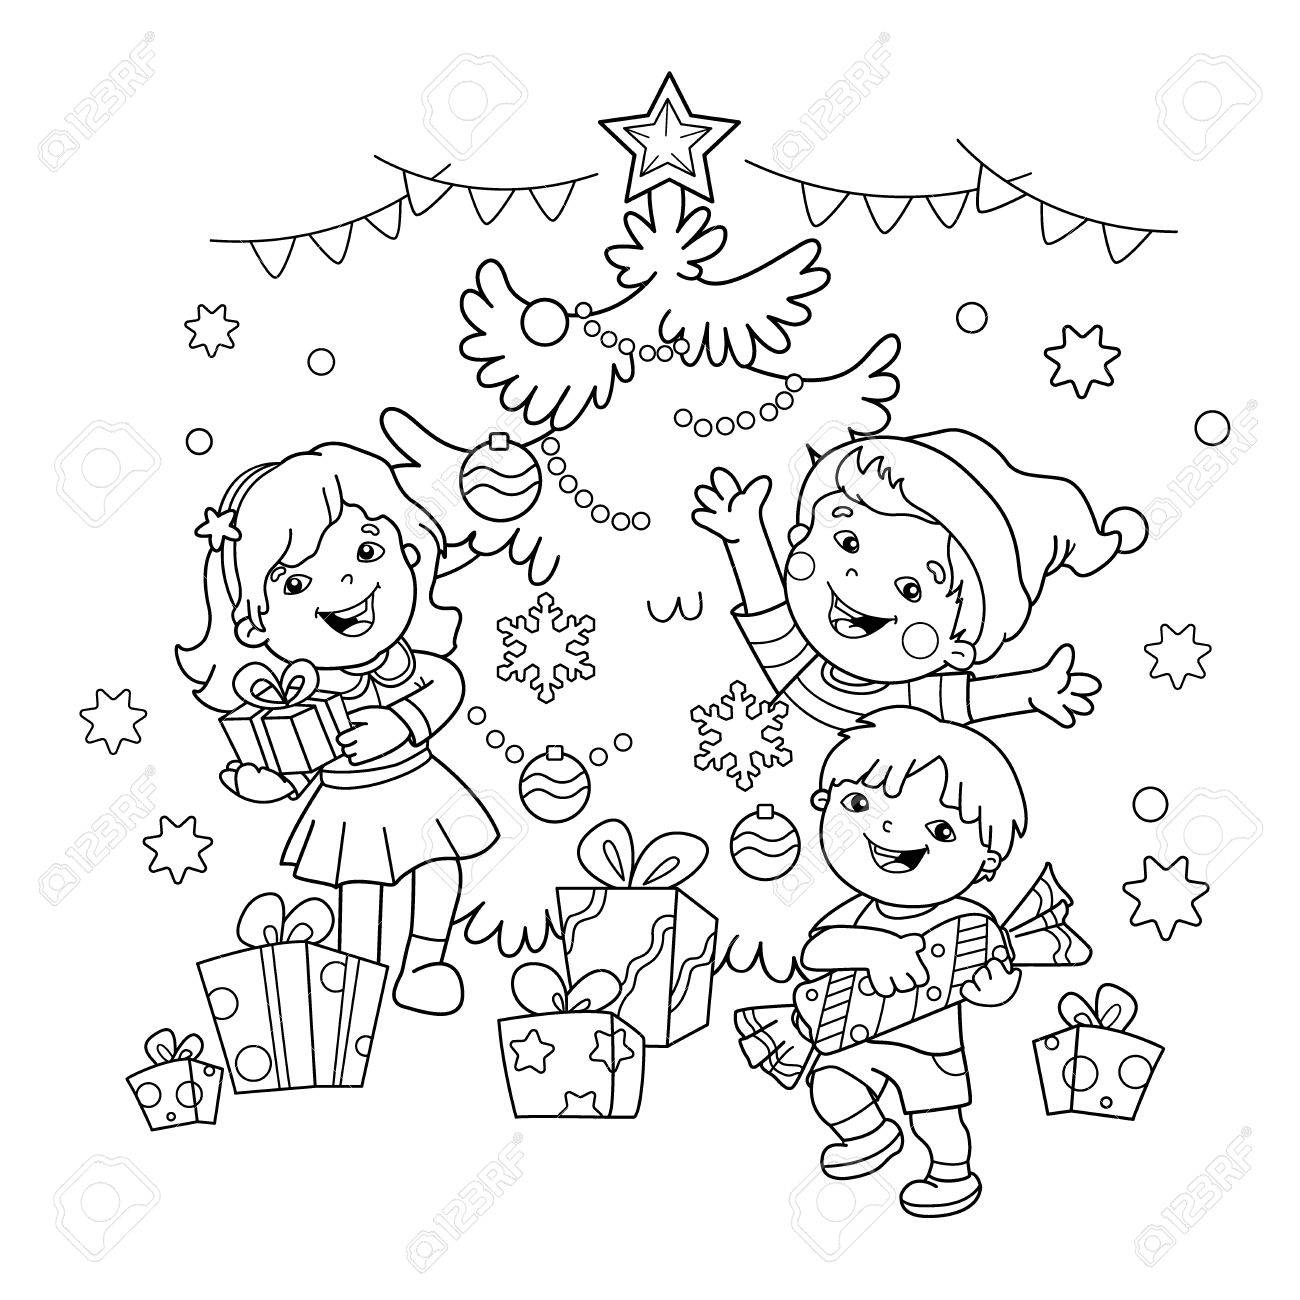 1300x1300 Coloring Page Outline Of Children With Gifts At Christmas Tree